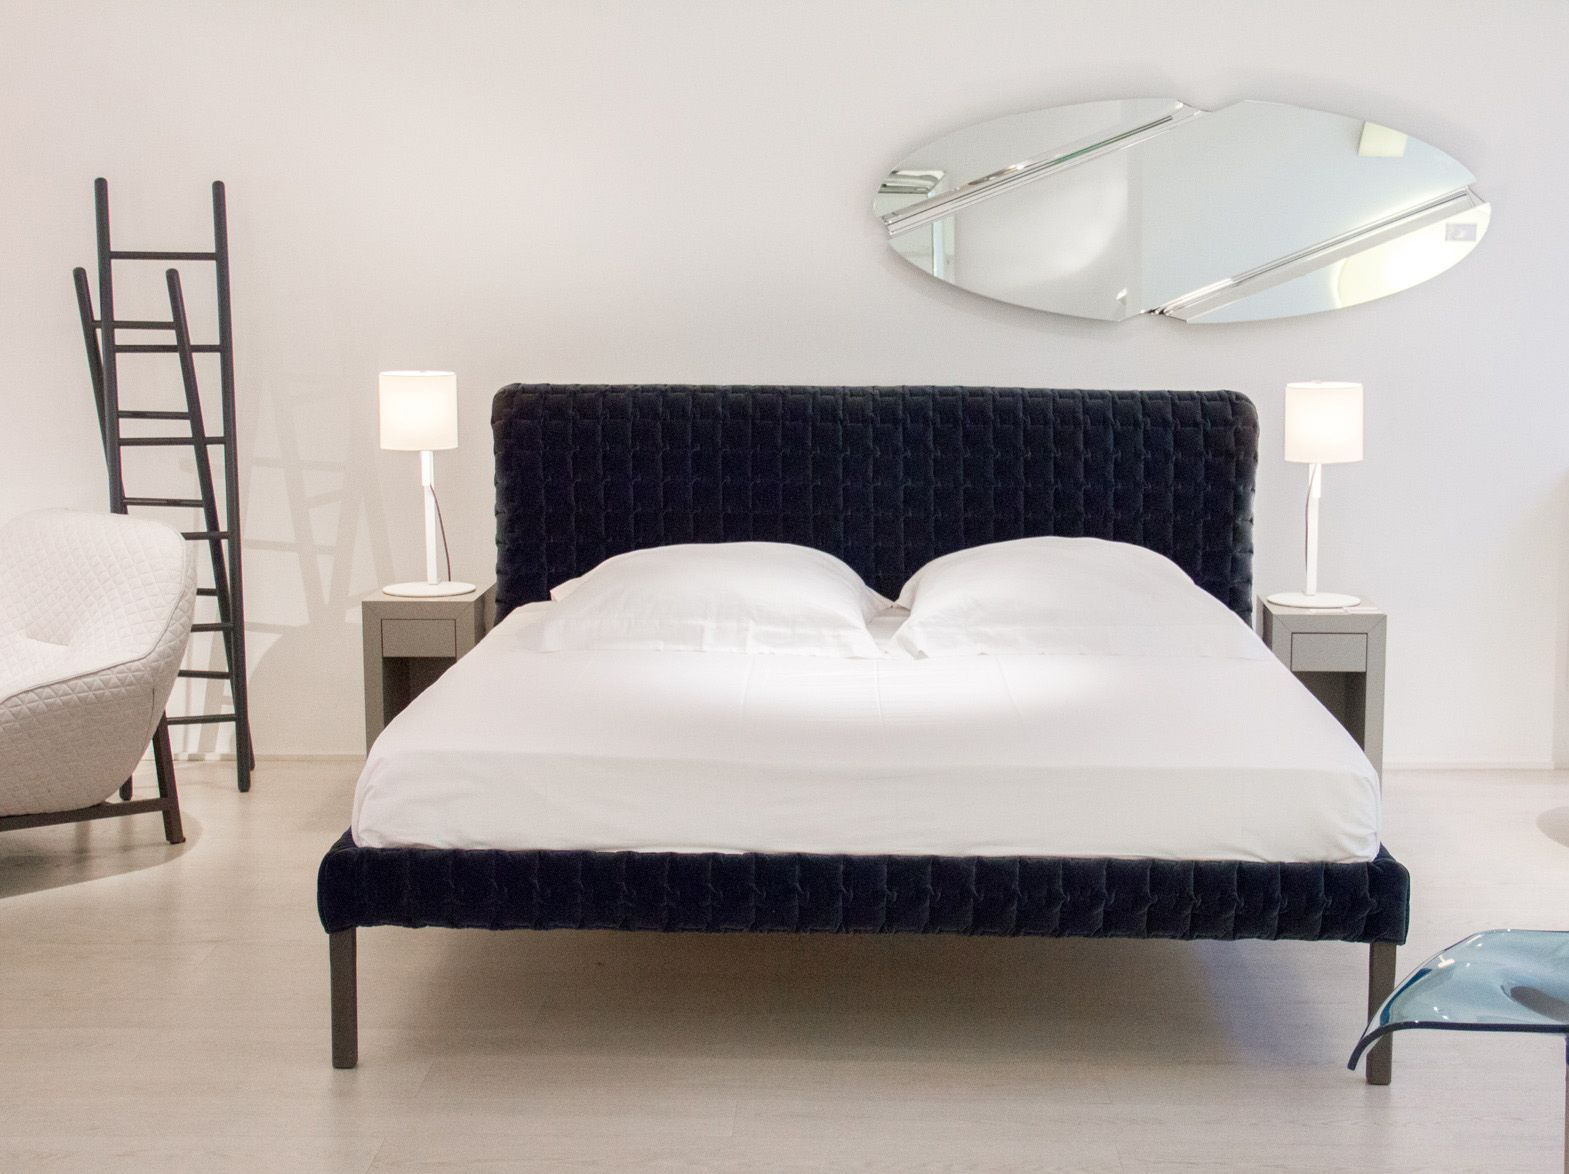 Ruche Bed Designed By Inga Sempe Bed Design Bed